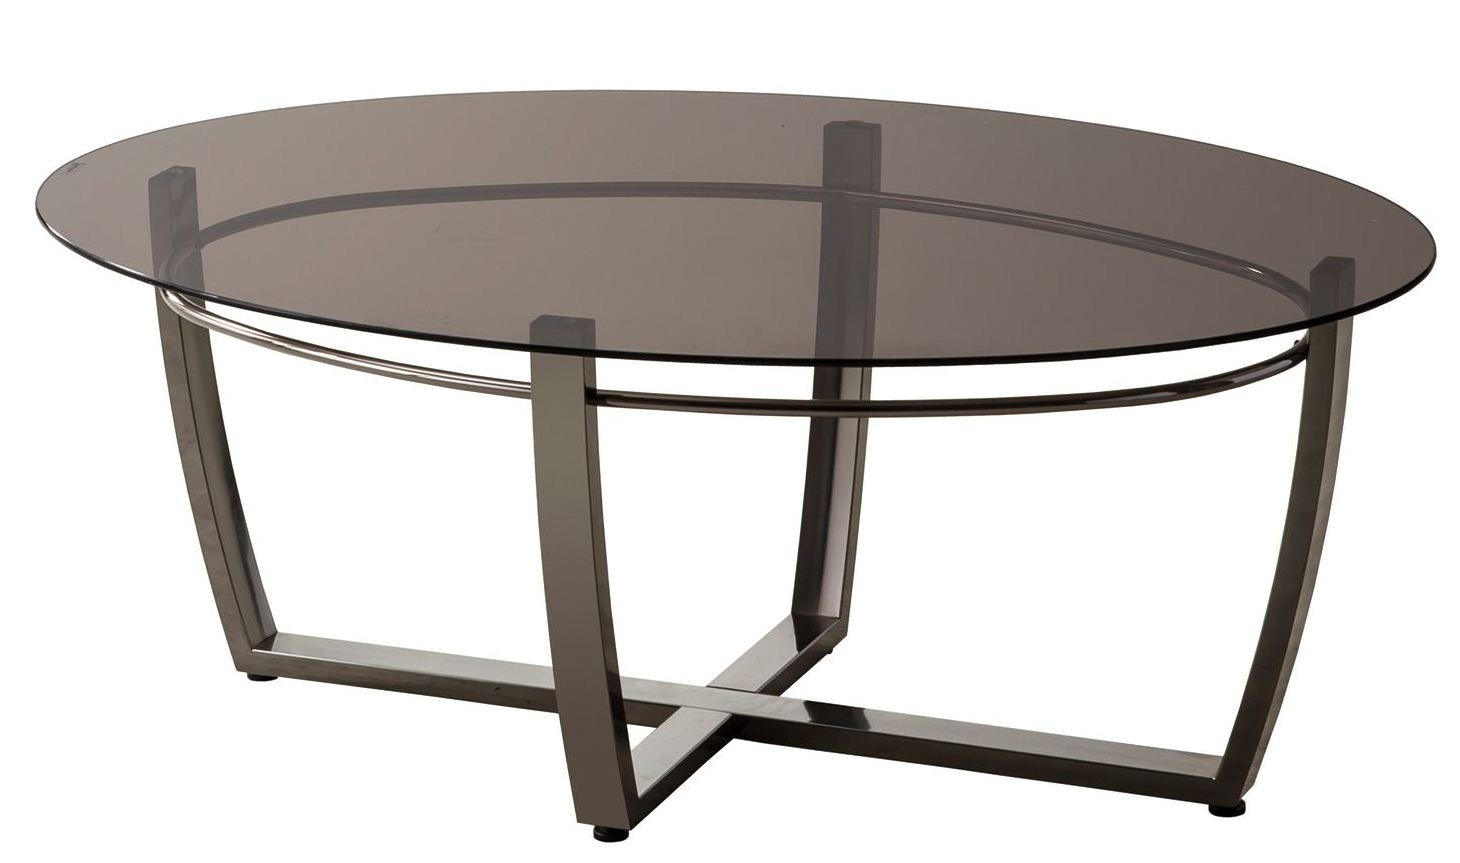 702278 black nickel oval shape coffee table 702278 coaster Oval shaped coffee table